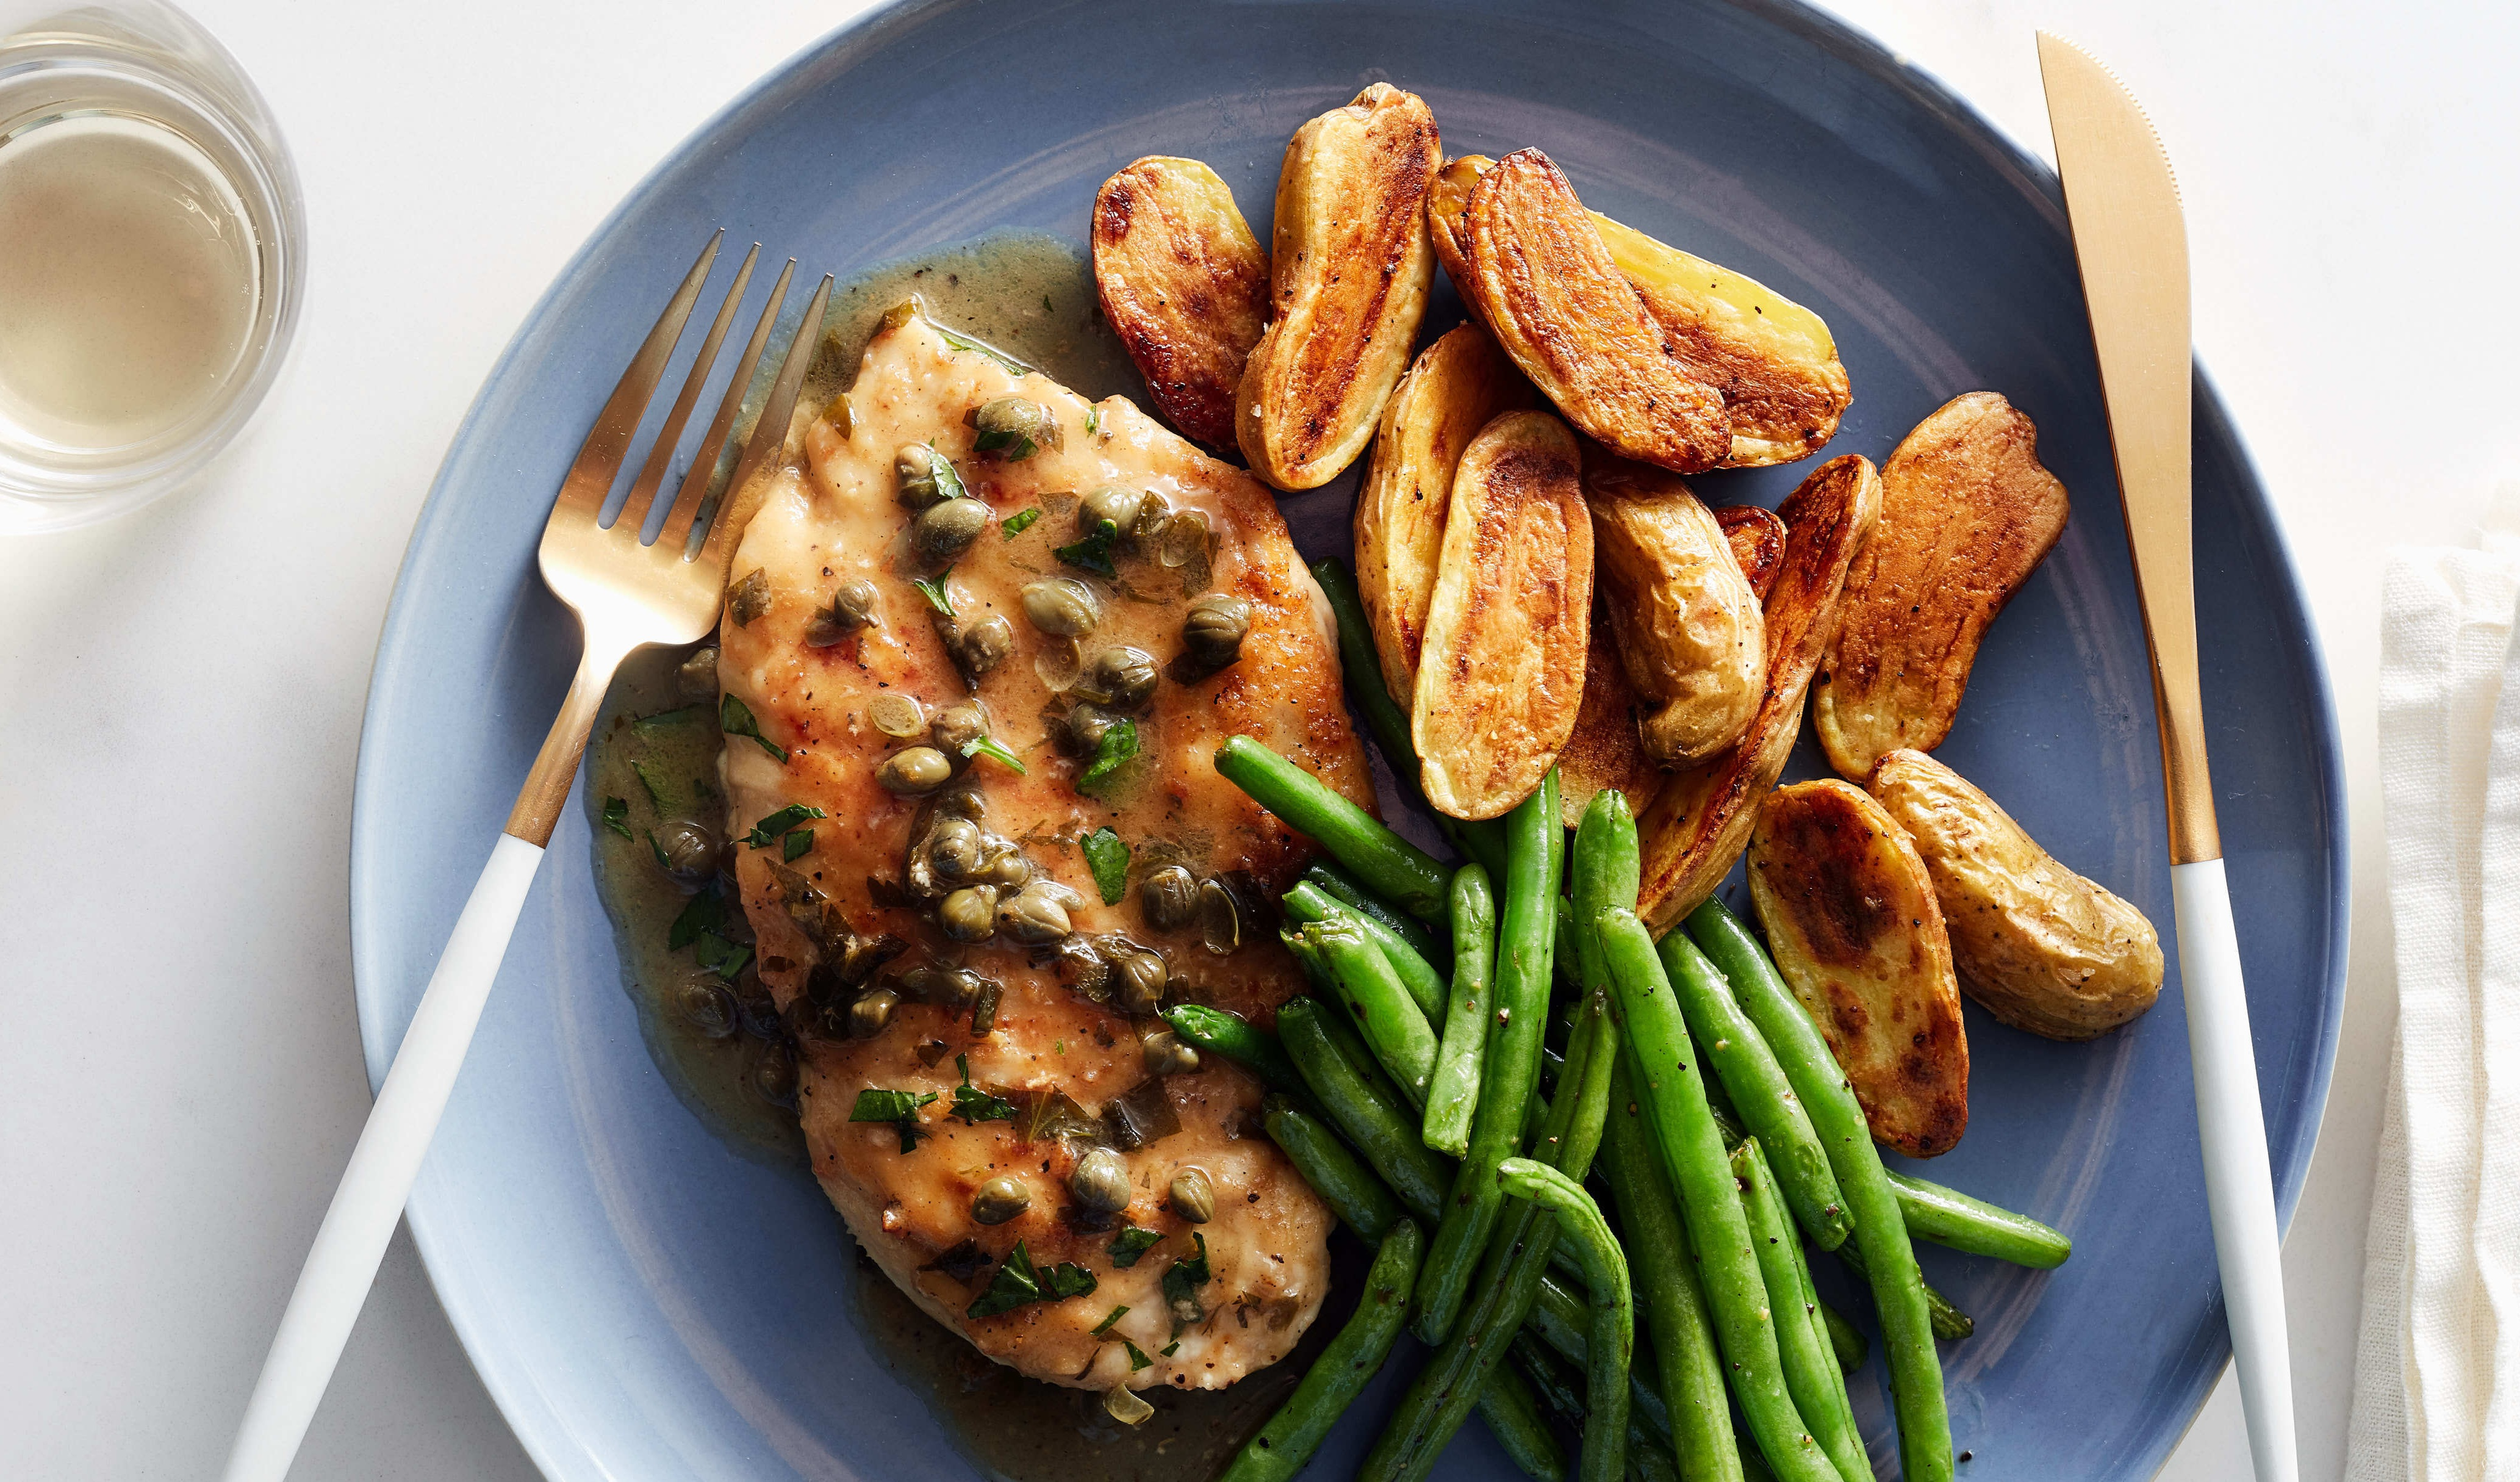 Chicken Piccata w/Roasted Fingerling Potatoes and Green Beans